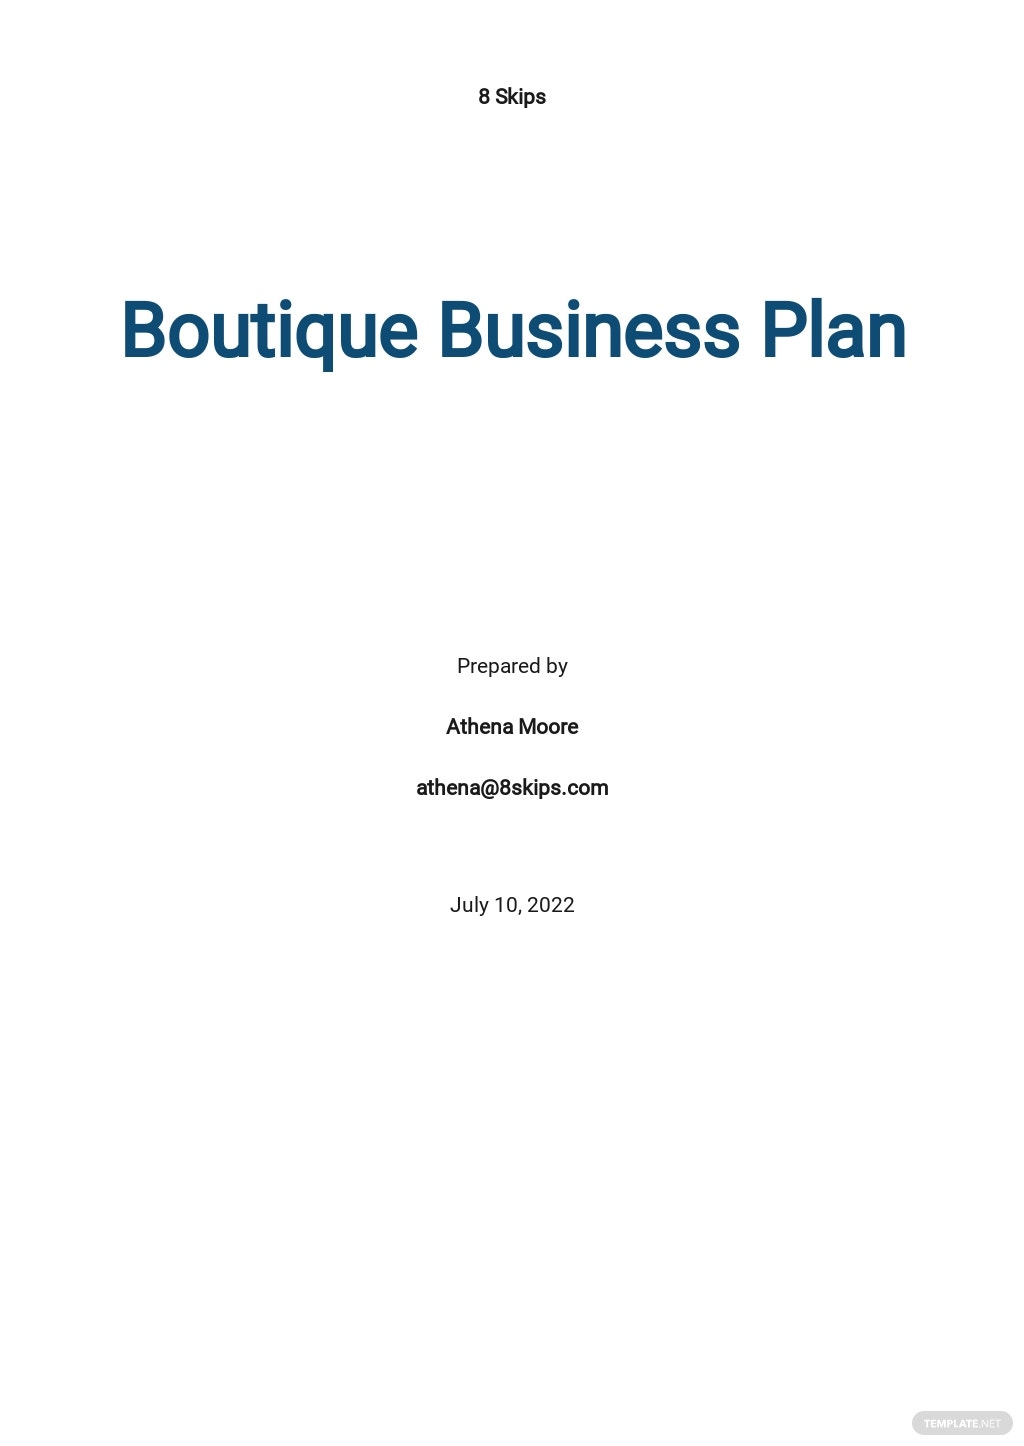 Sample Boutique Business Plan Template